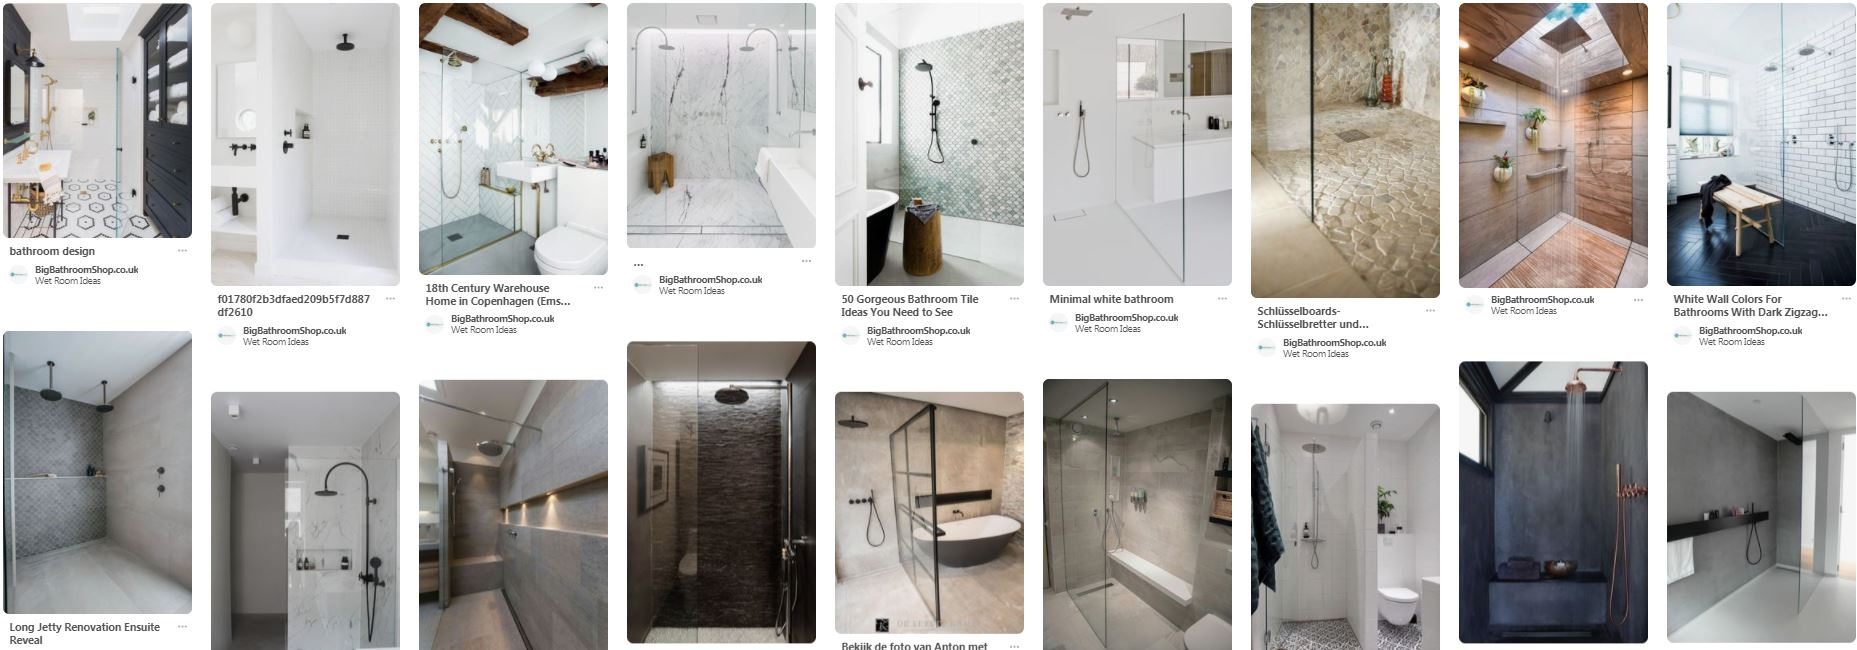 Wet Rooms - How to Create the Perfect Showering Space